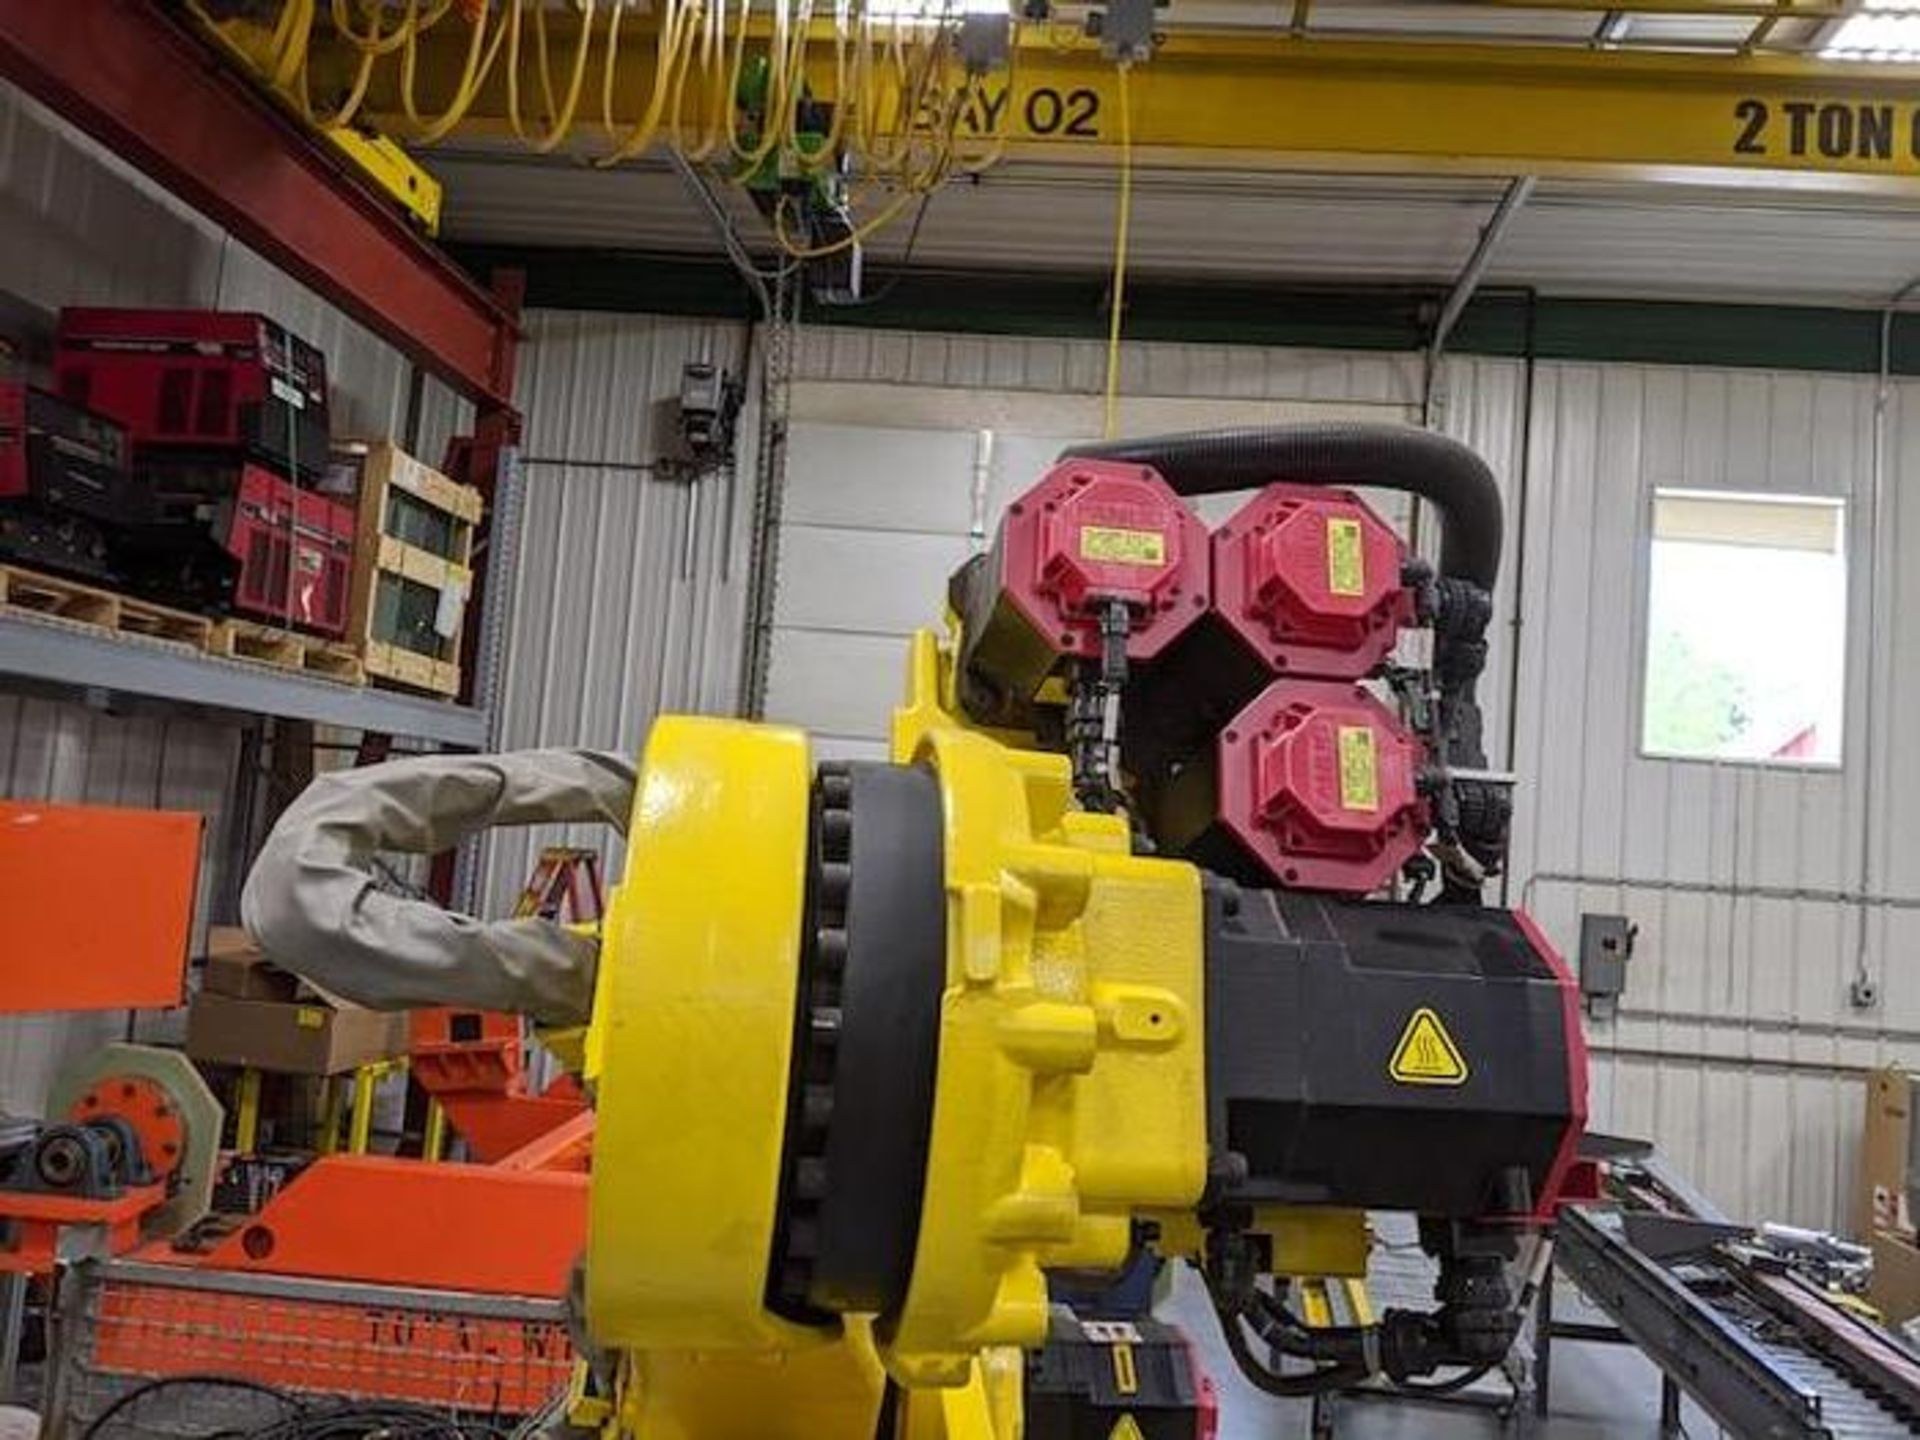 FANUC R2000iC/125L 6 AXIS CNC ROBOT WITH R30iB CONTROLLER, IR VISION, CABLES & REACH - Image 15 of 17